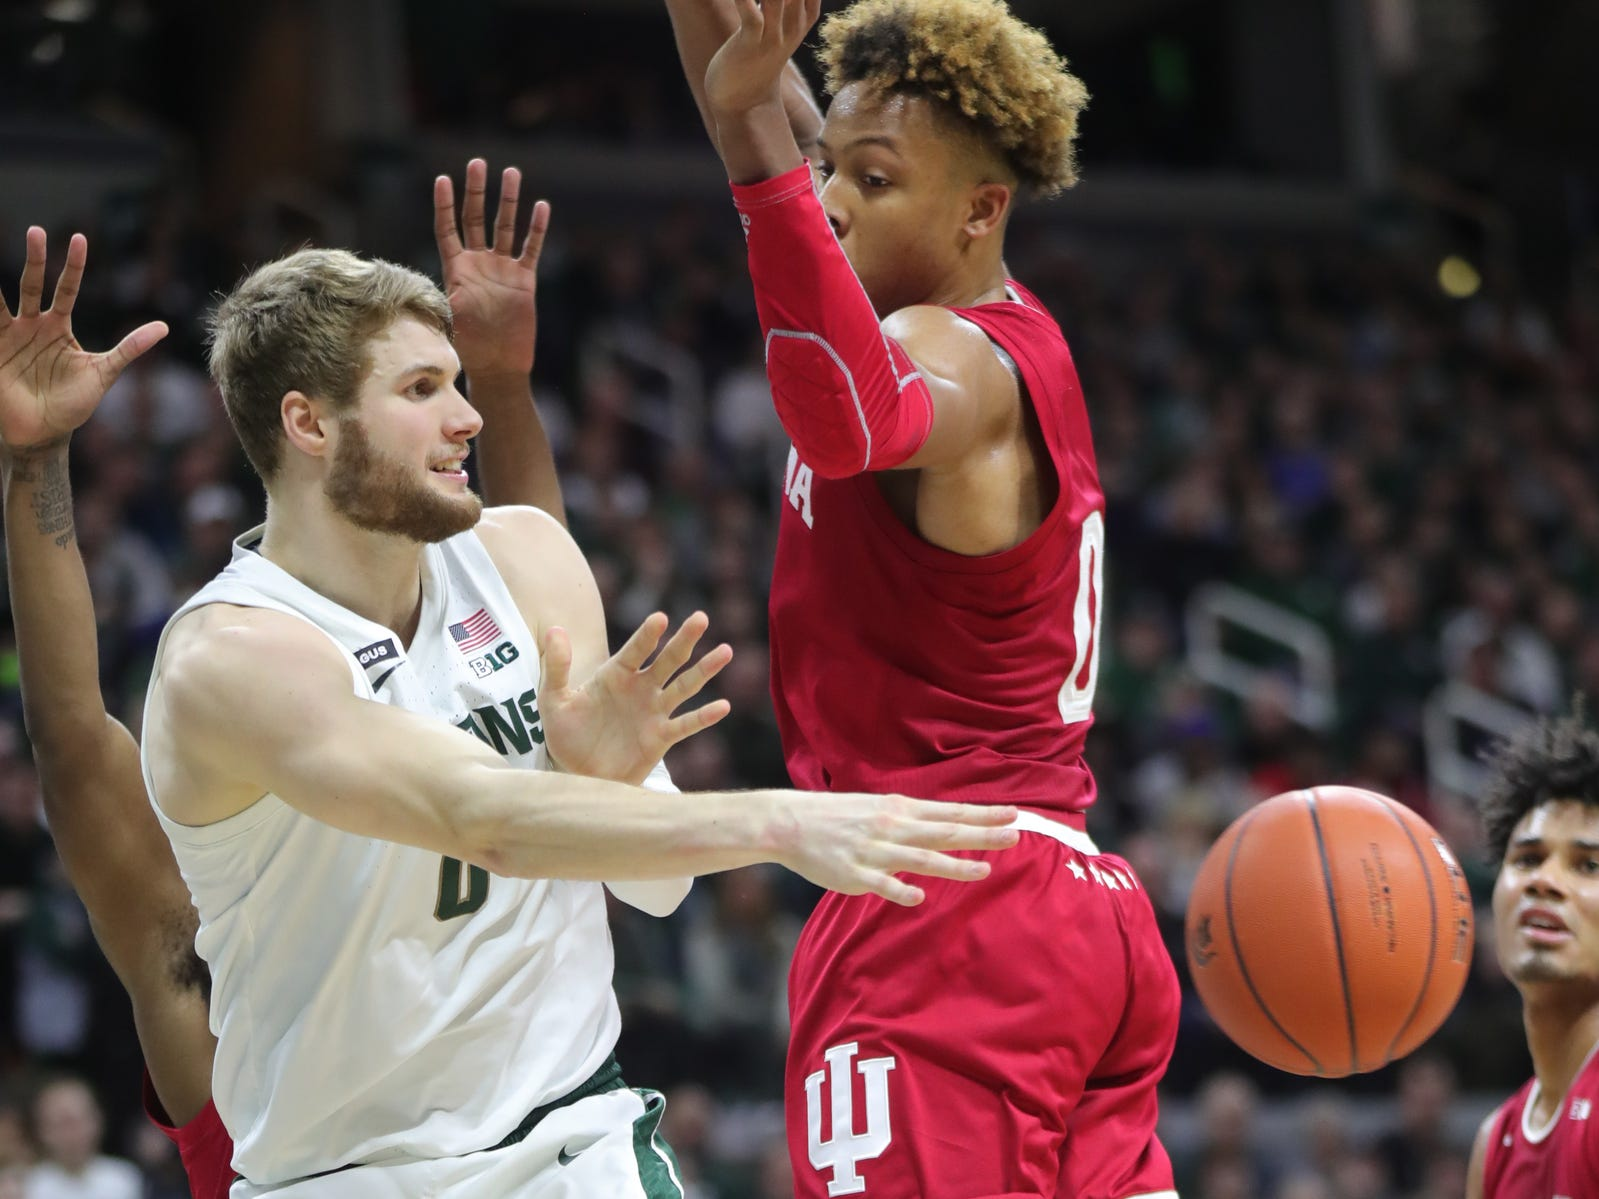 Michigan State's Kyle Ahrens passes around Indiana's Romeo Langford during the first half Feb. 2, 2019 at the Breslin Center in East Lansing.